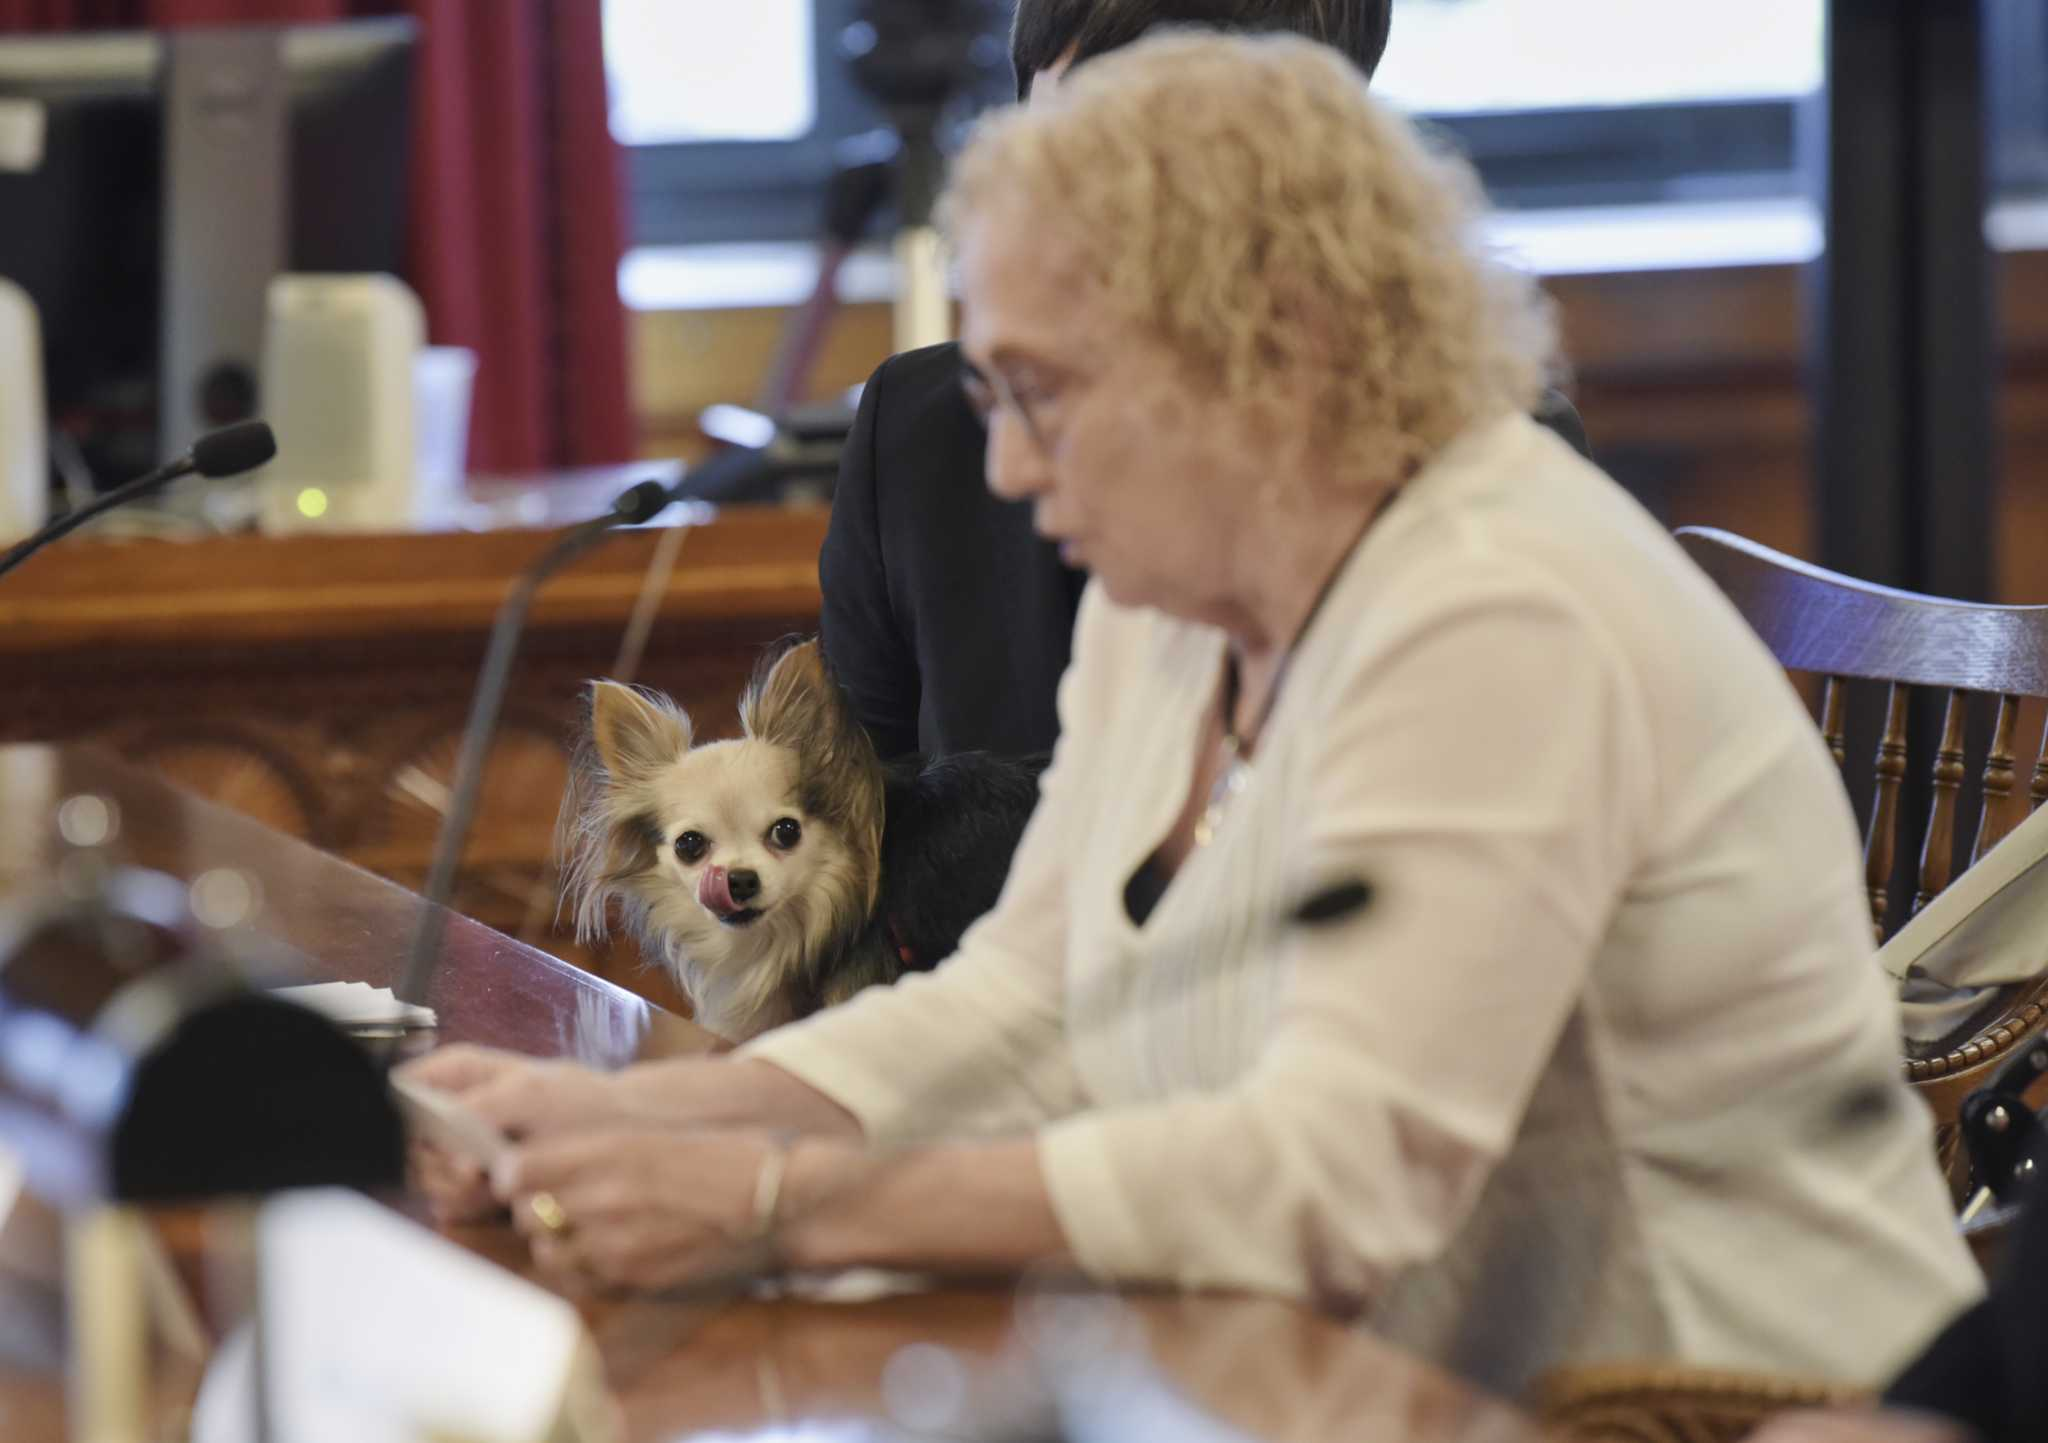 Woman, 76, appears with dog at Court of Appeals at hearing on civil legal services for poor - Times Union